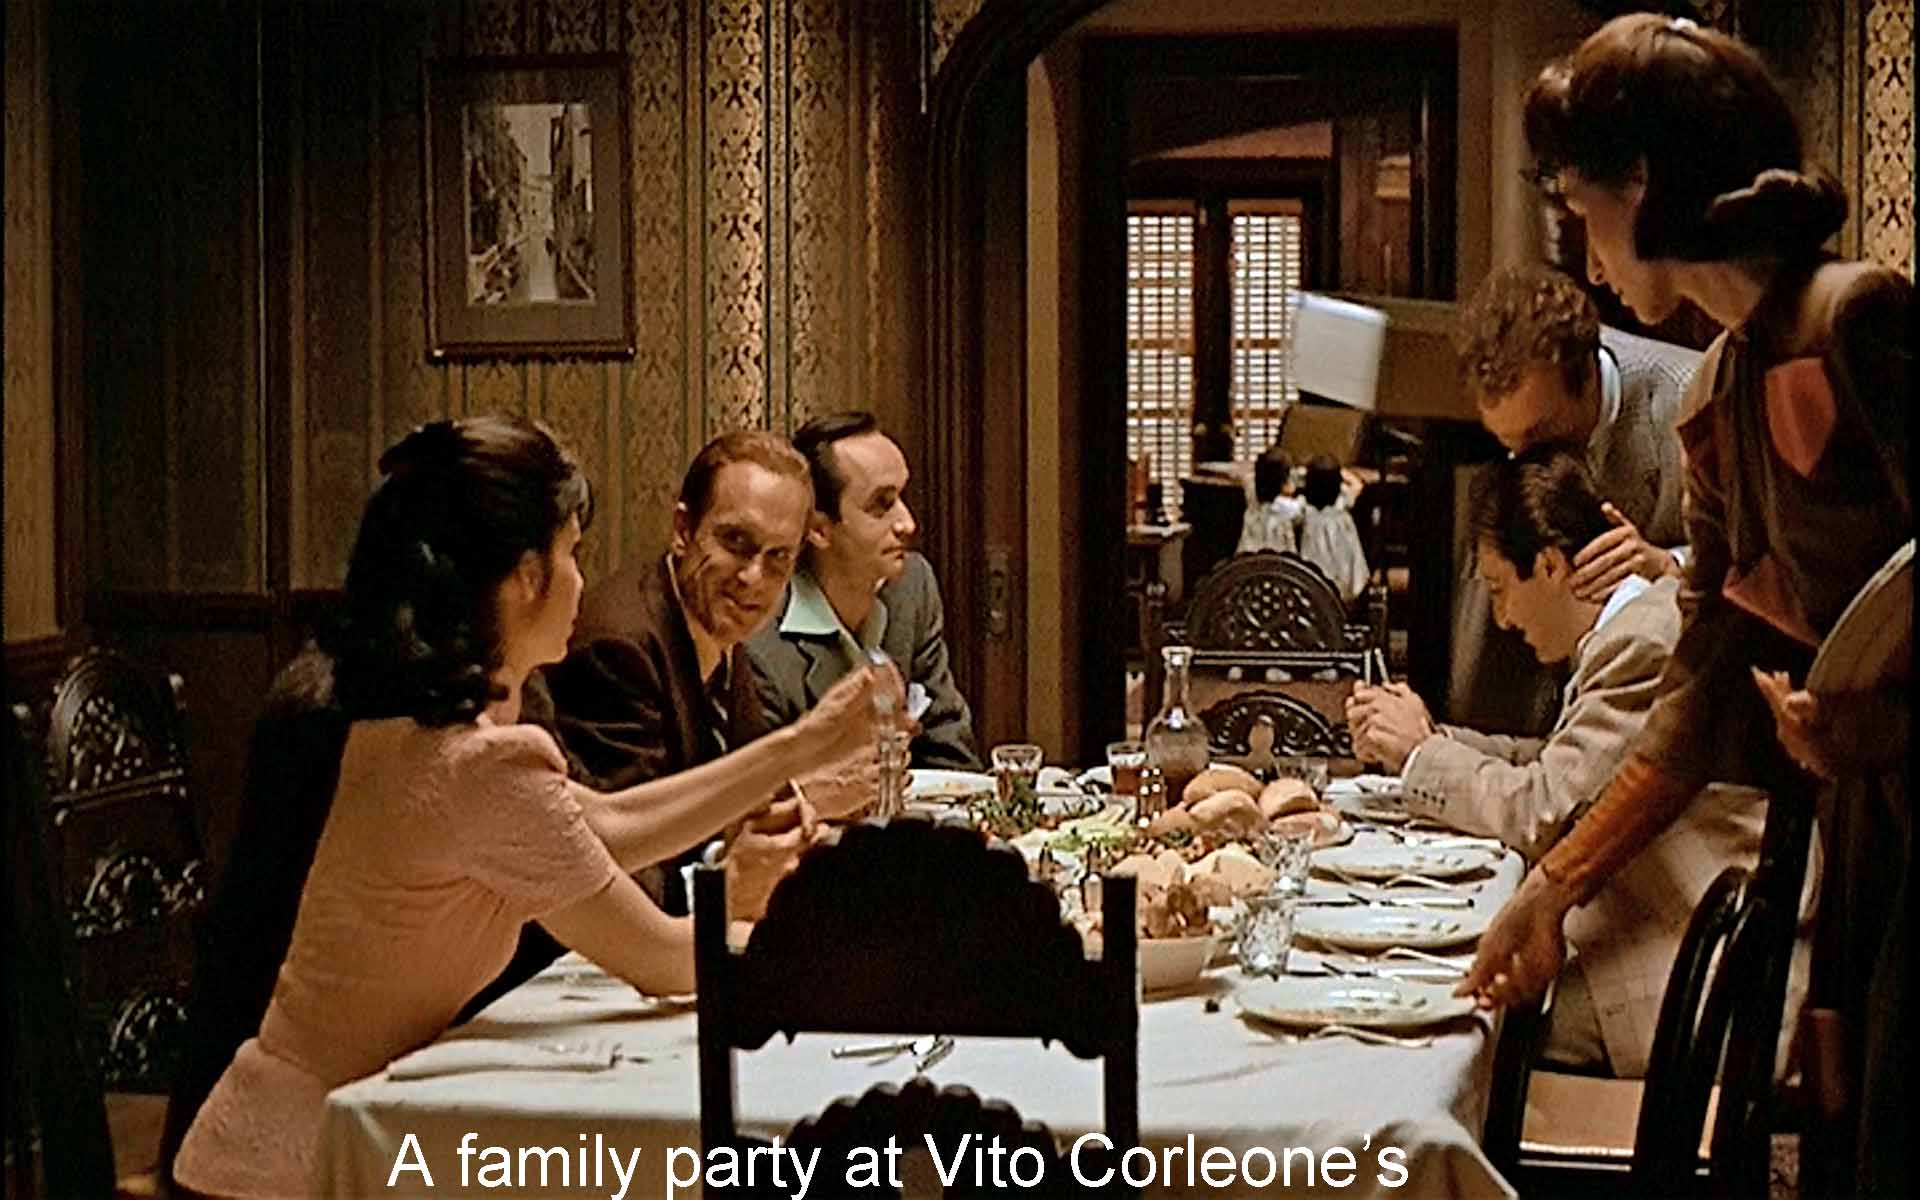 A family party at Vito Corleone's